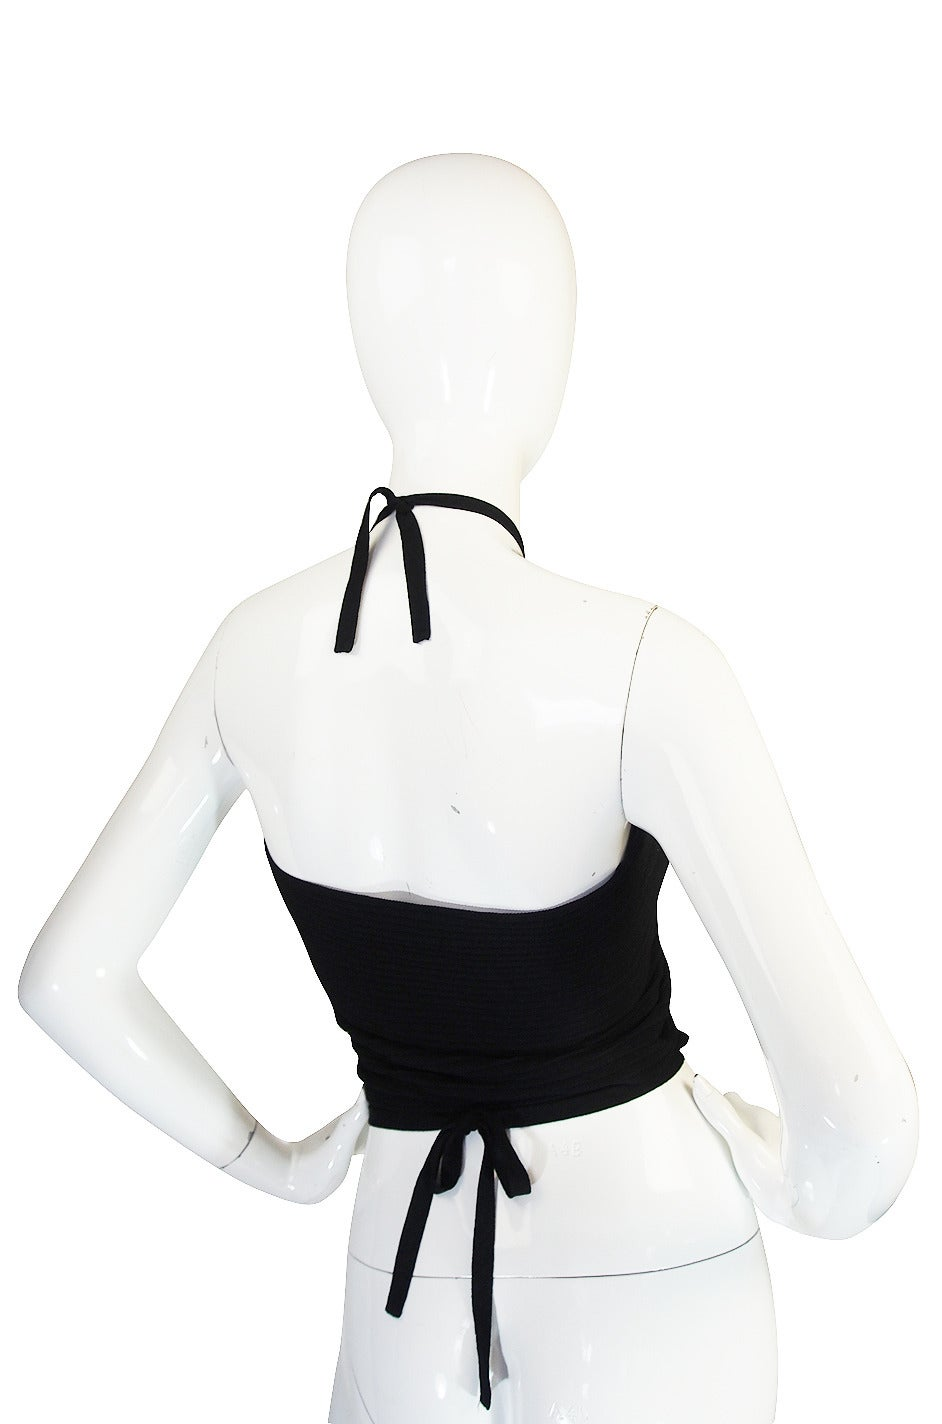 circa 1996 Tom Ford for Gucci Black Halter Knit Top 2